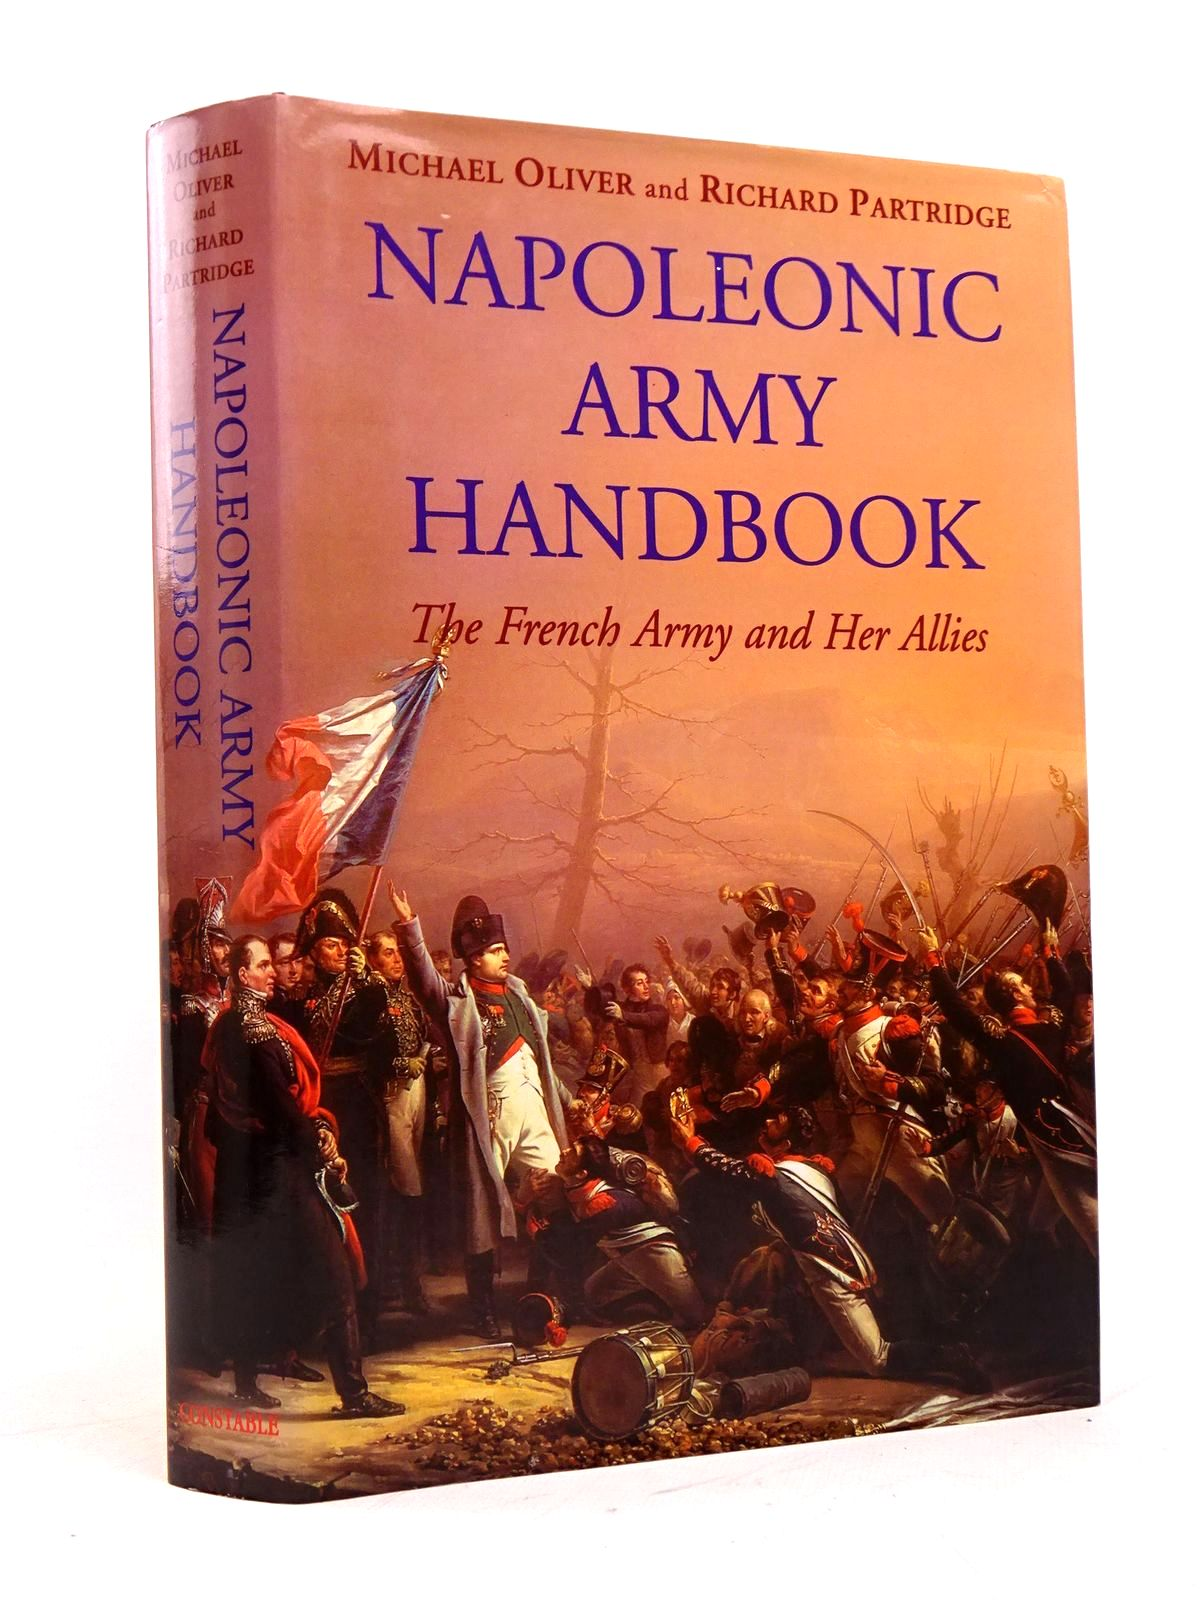 Photo of NAPOLEONIC ARMY HANDBOOK: THE FRENCH ARMY AND HER ALLIES written by Partridge, Richard Oliver, Michael published by Constable (STOCK CODE: 1818060)  for sale by Stella & Rose's Books